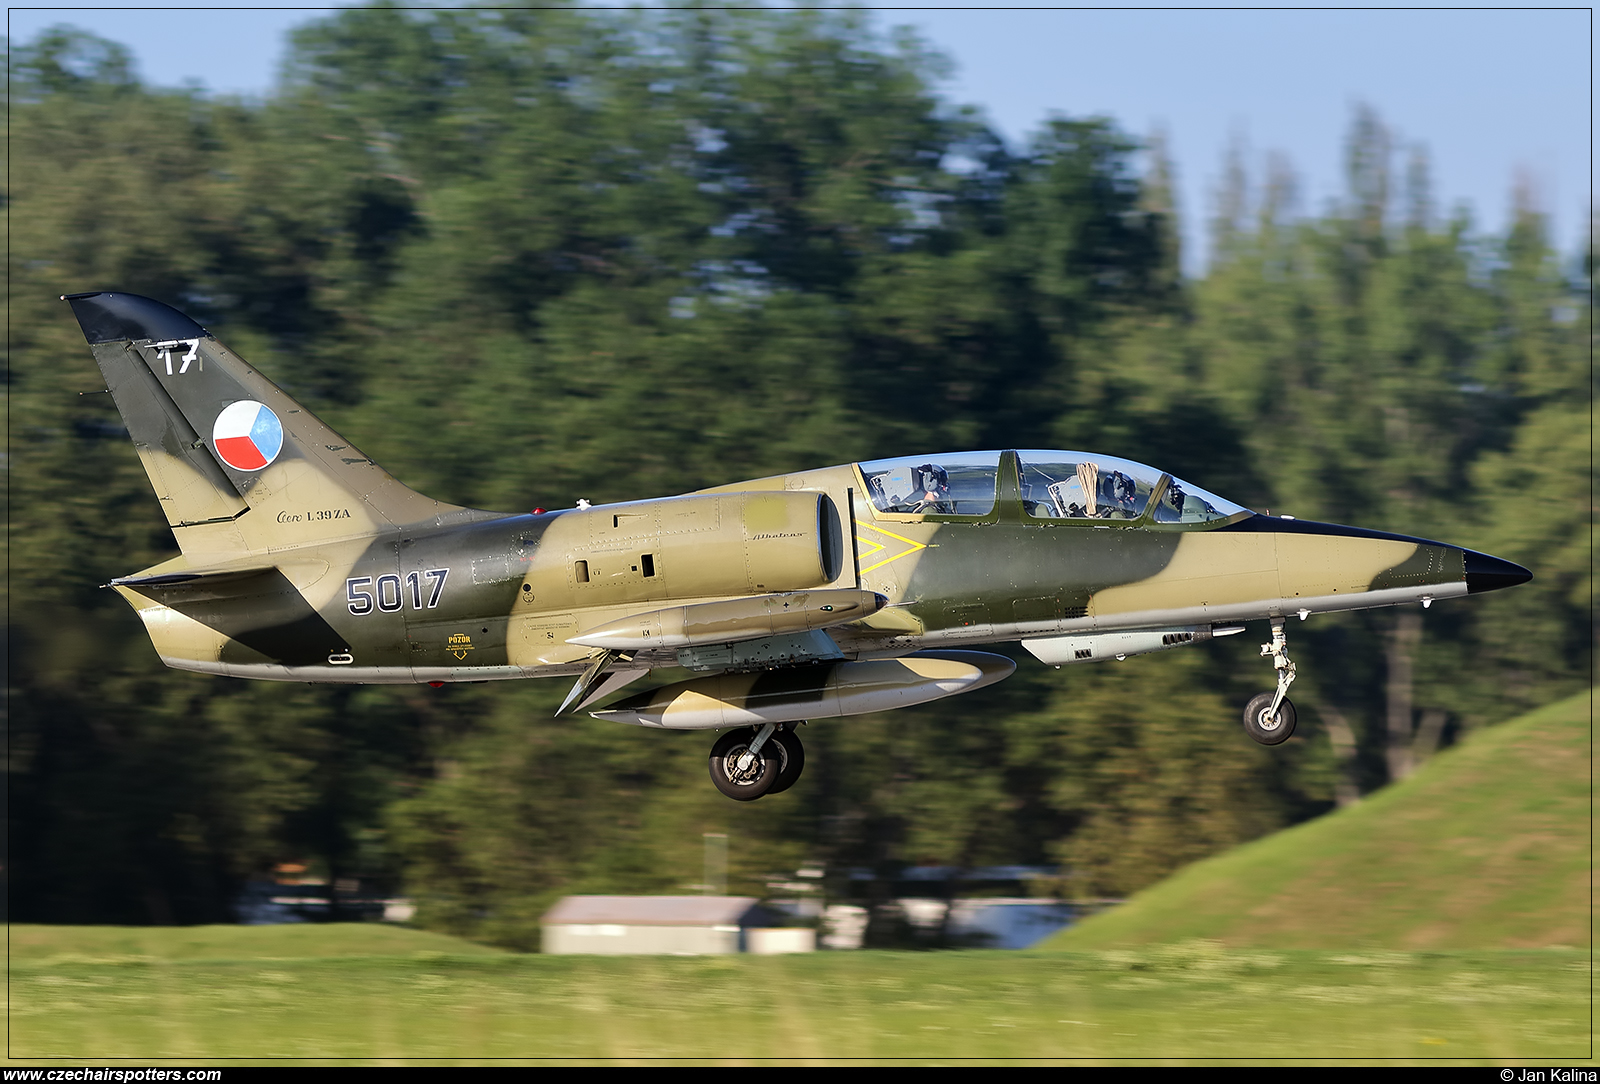 Czech - Air Force – Aero L-39ZA Albatros 5017